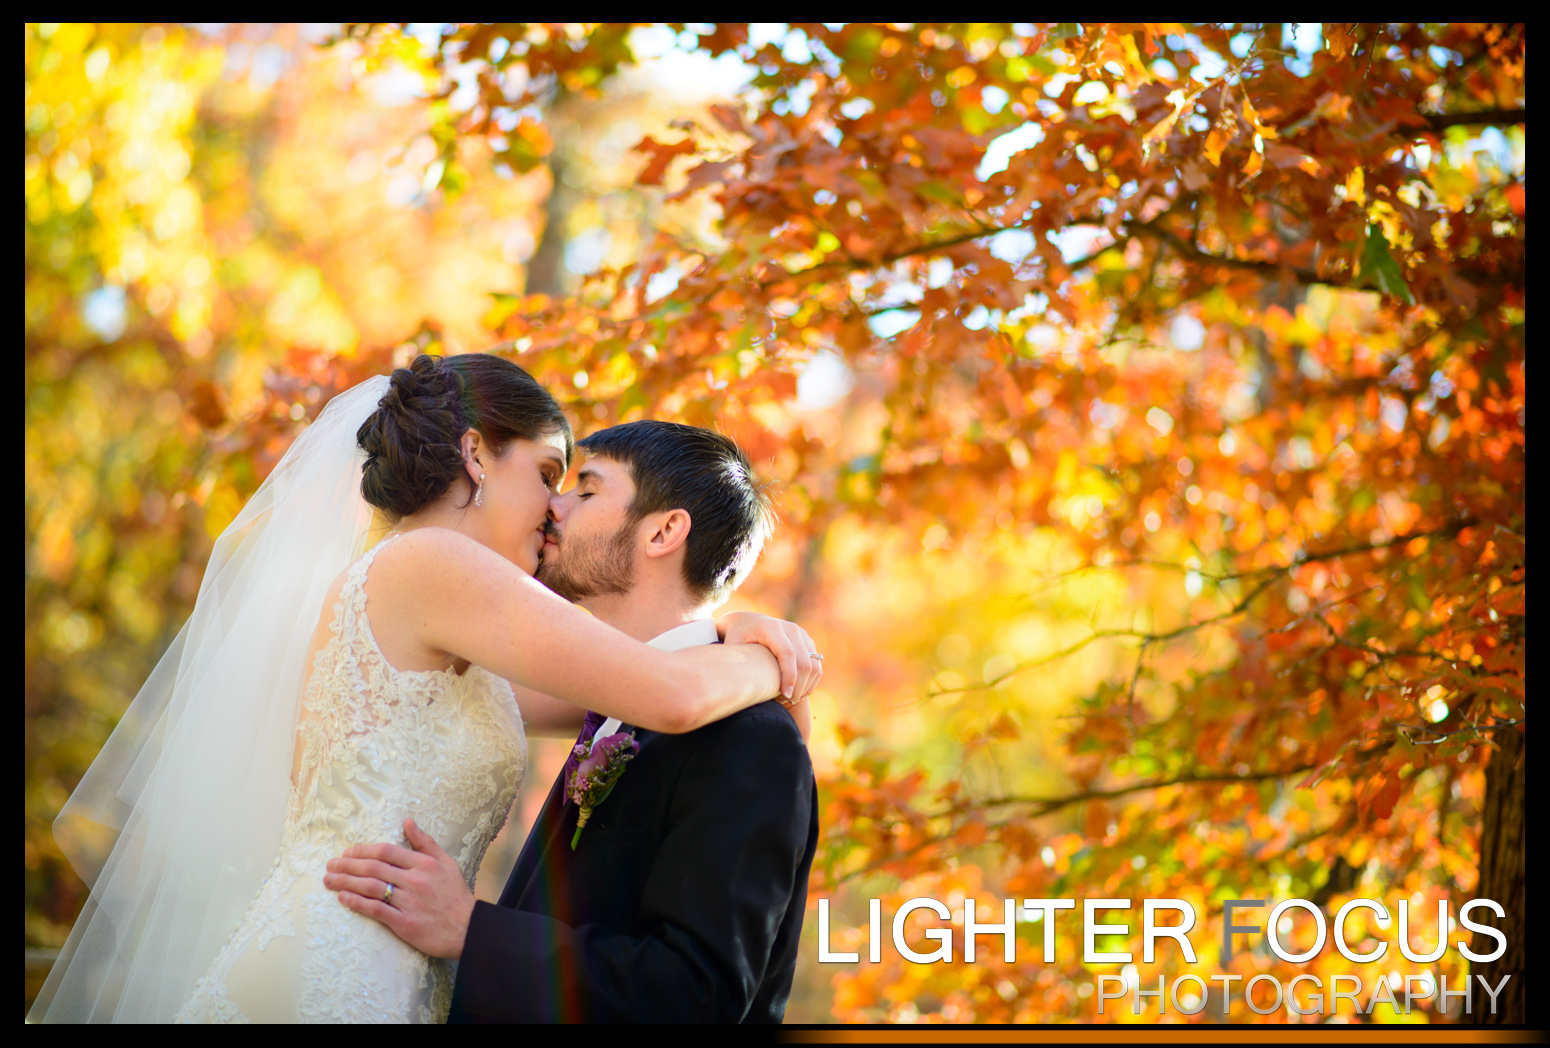 Integrity Hills wedding ~ Matt & Kristin ~ Lighter Focus Photography